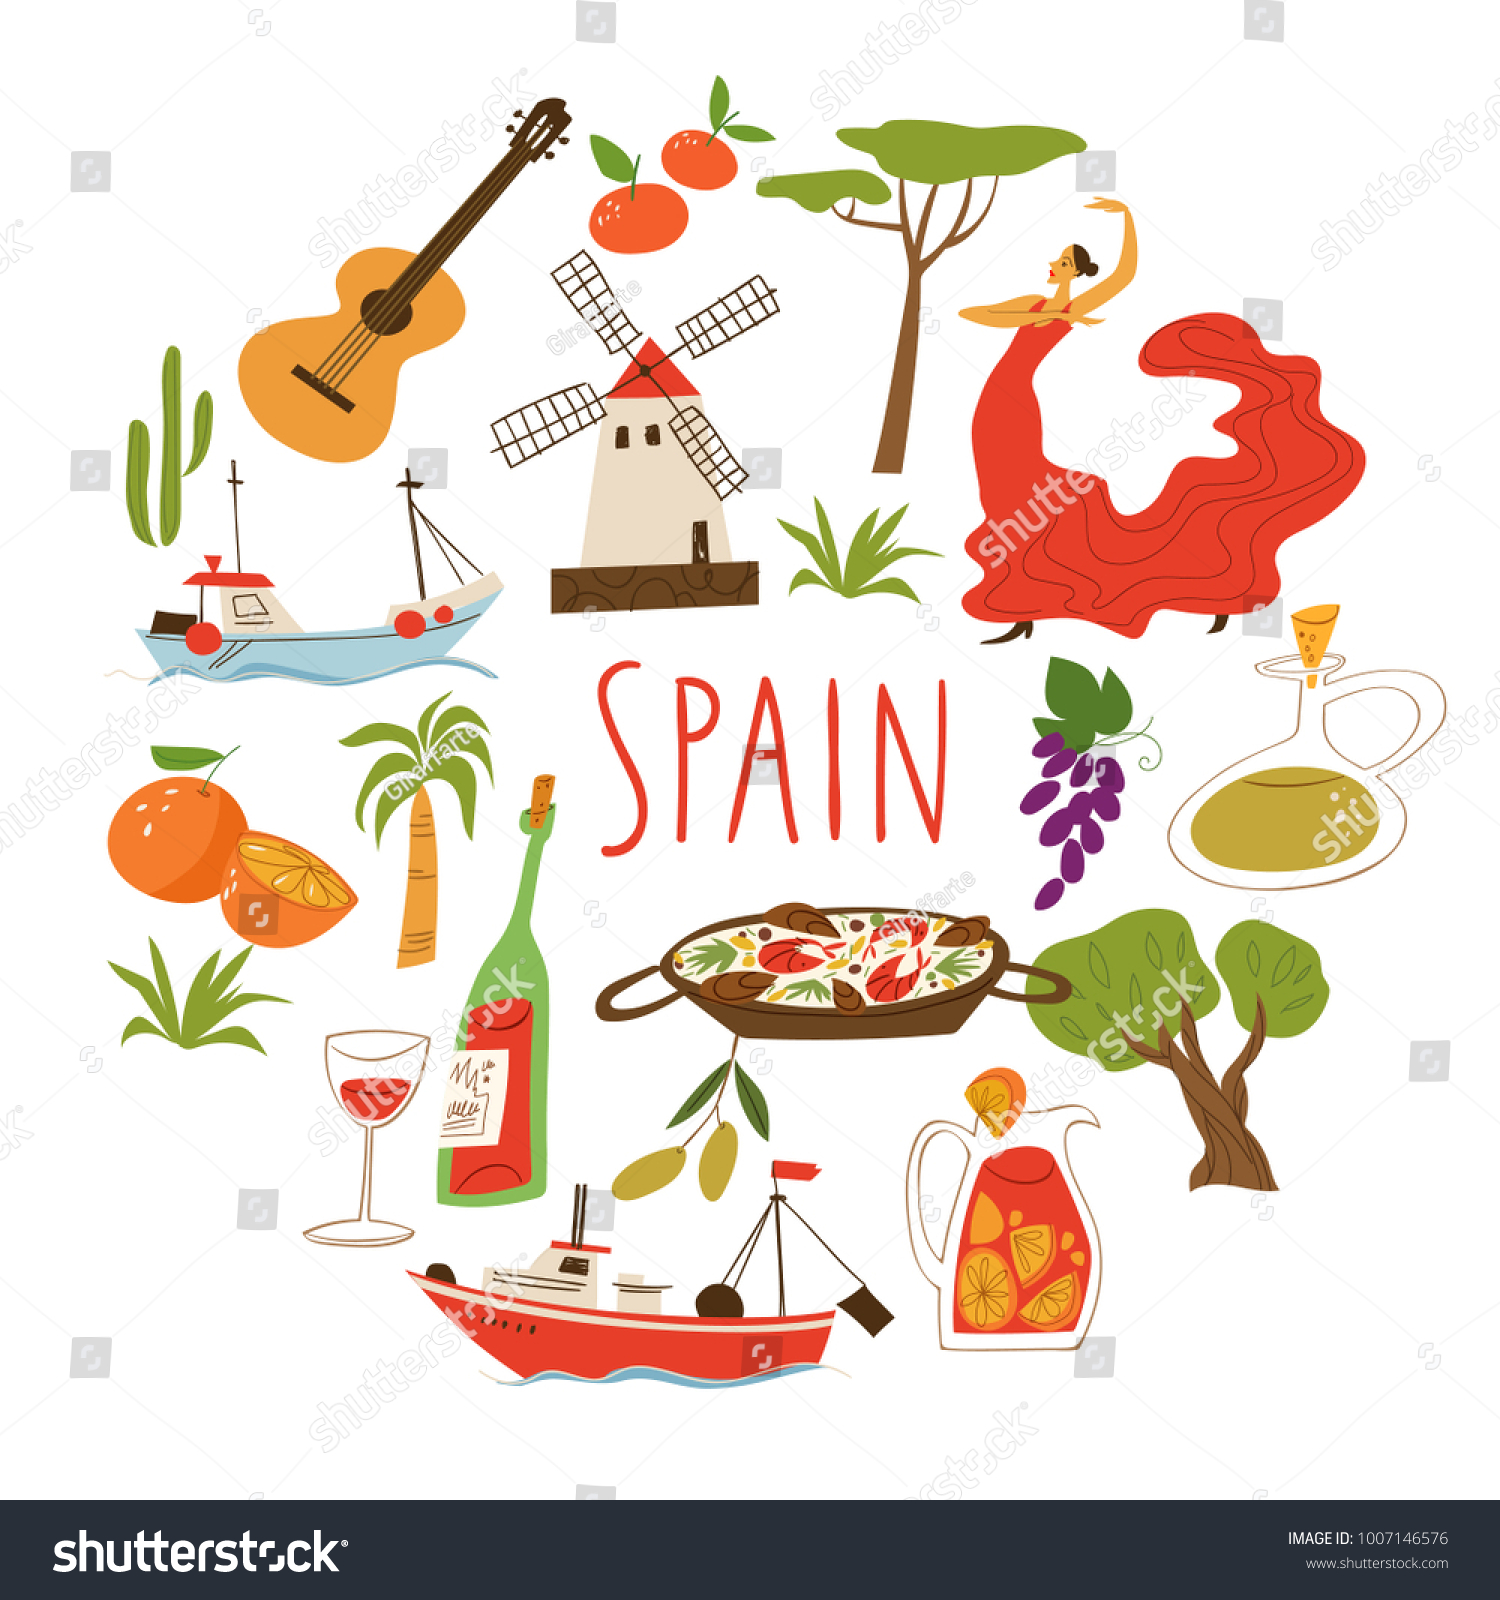 Vector symbols spain culture food architecture stock vector vector symbols of spain culture food and architecture buycottarizona Images